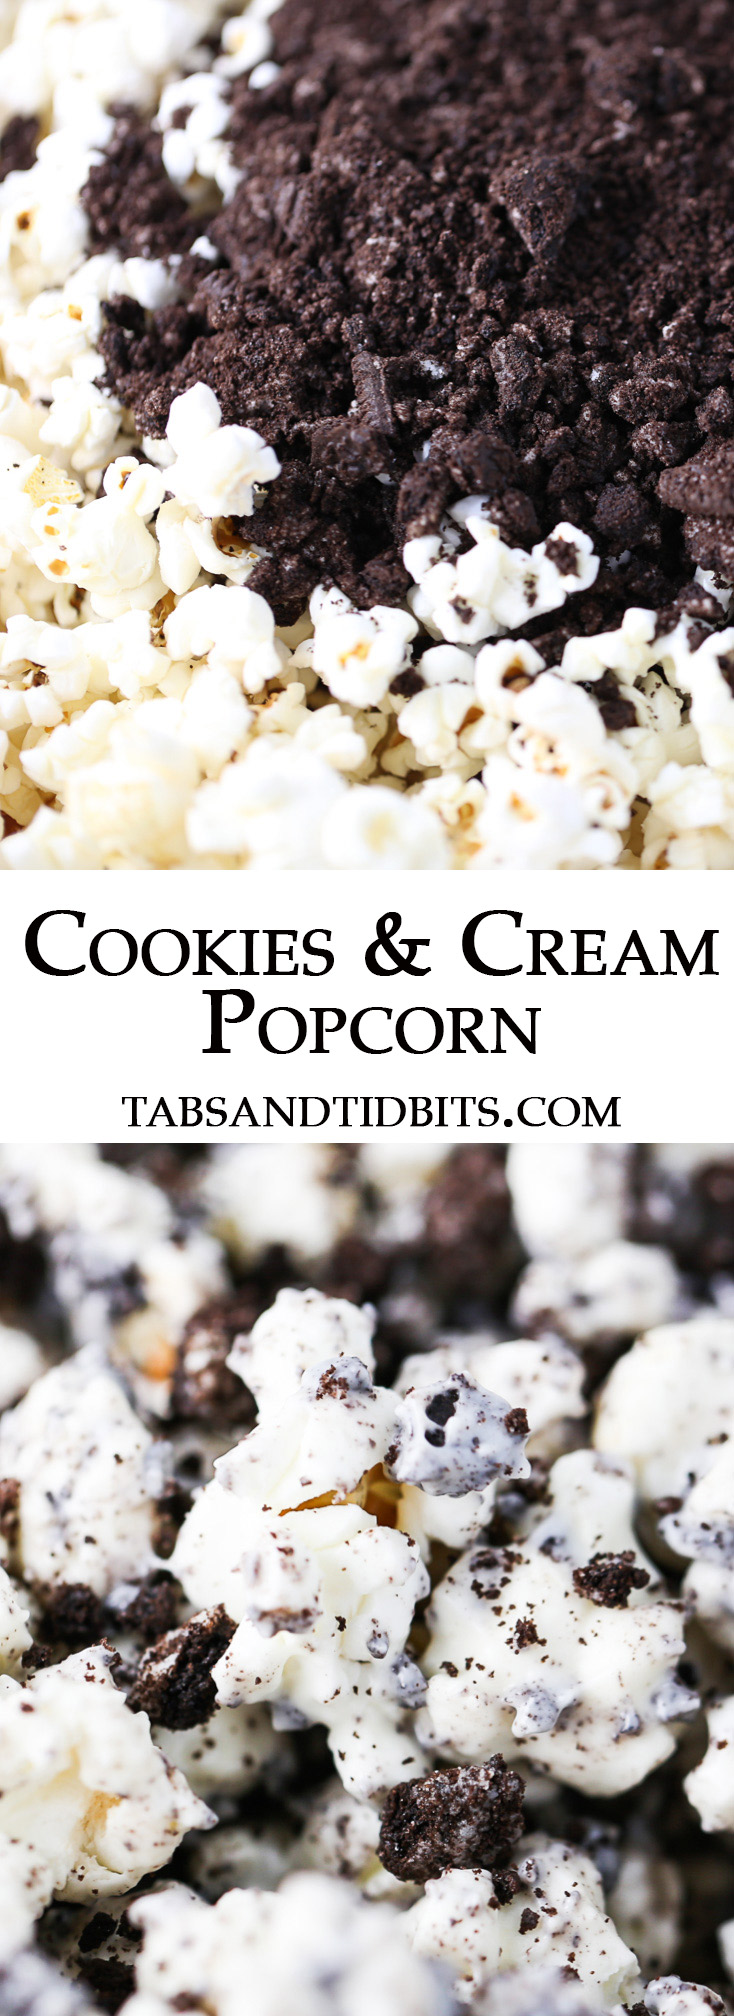 Crushed Oreo cookies and white chocolate coated popcorn is the perfect match for a sweet treat!